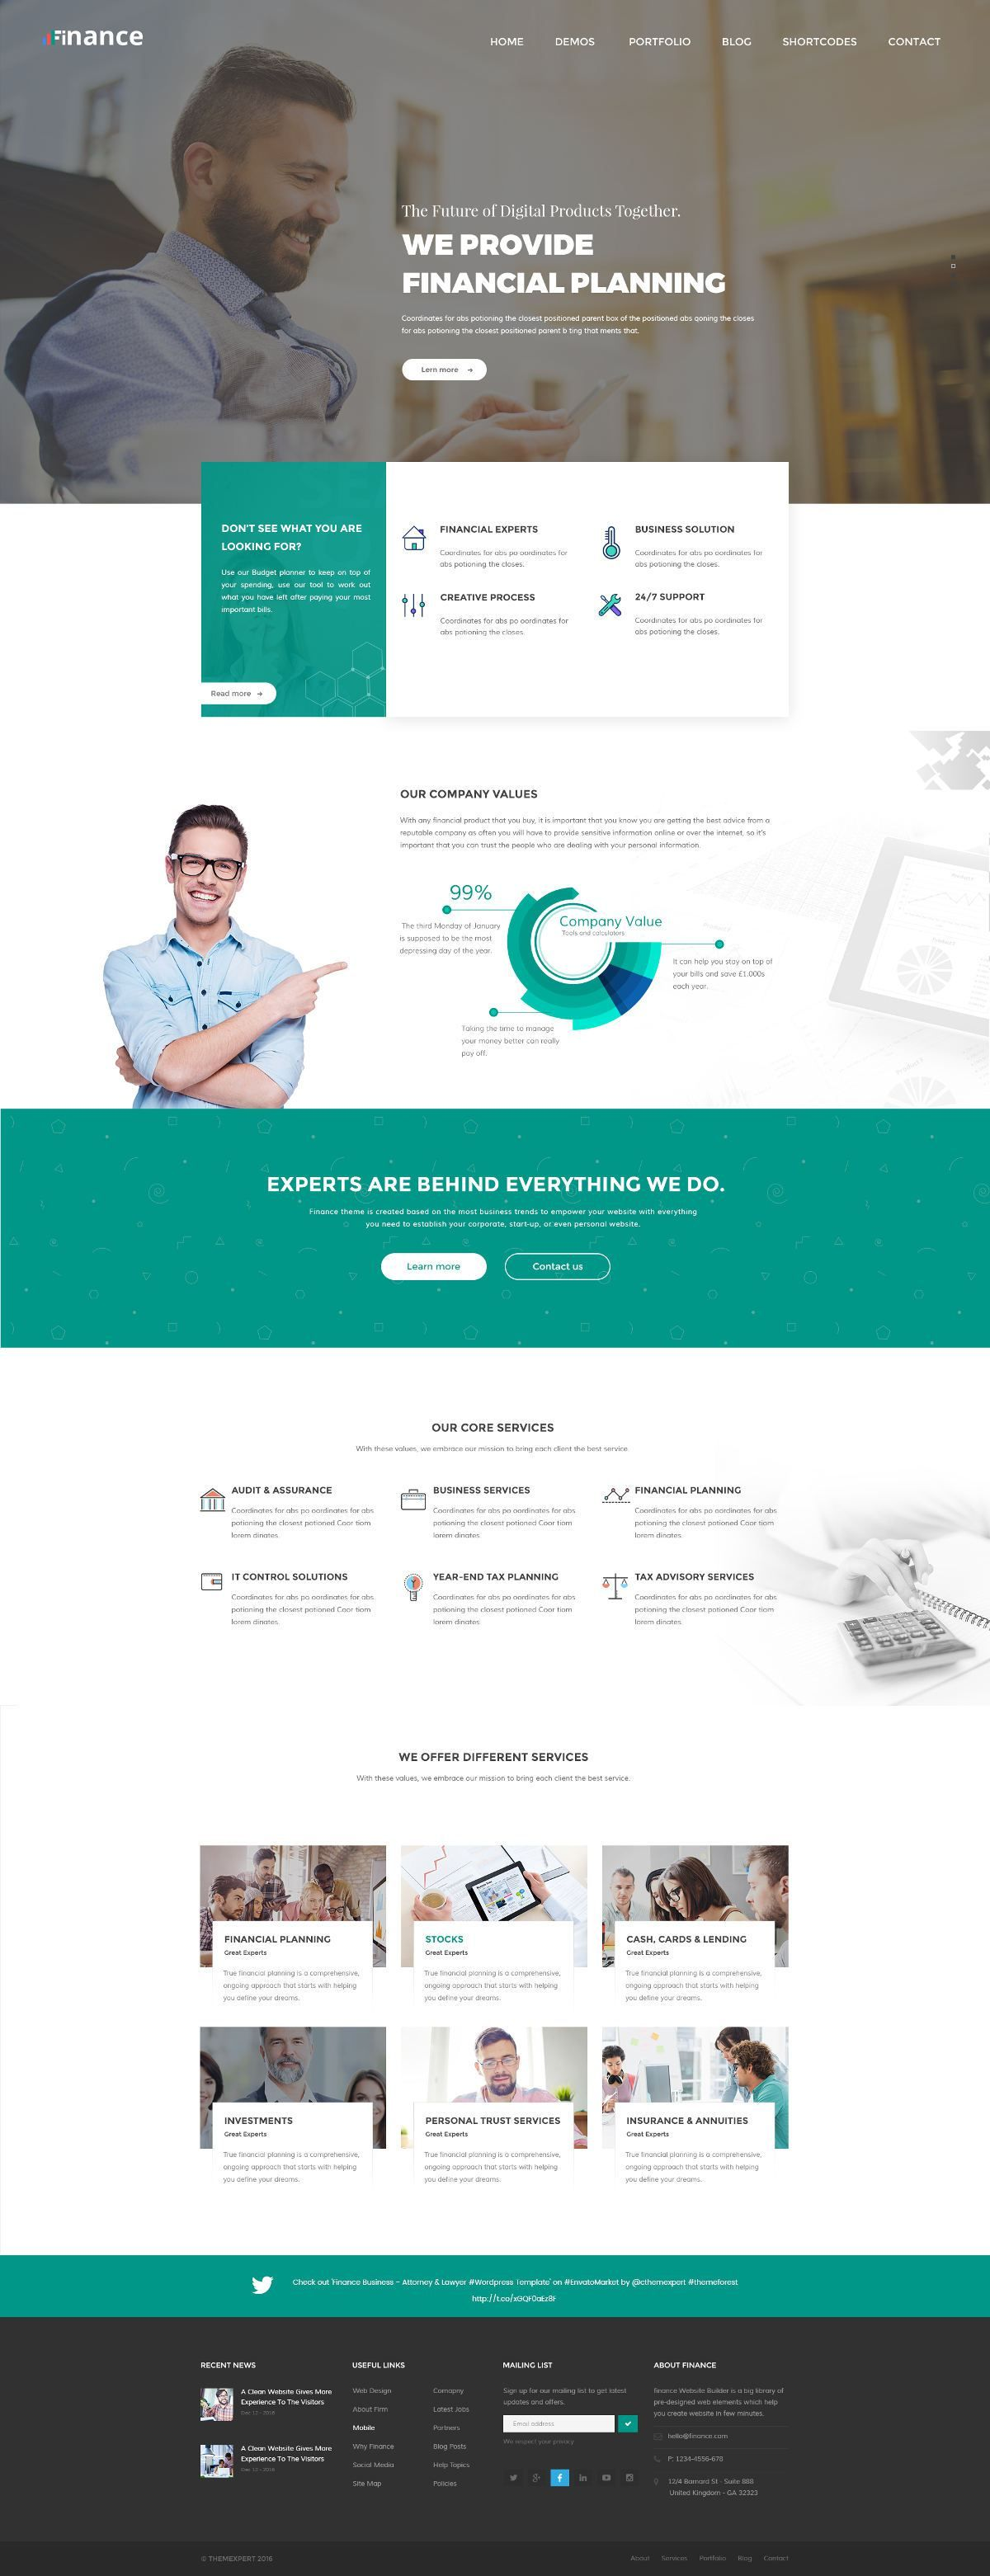 Finance Consulting Business Website Template Psd Ideas For